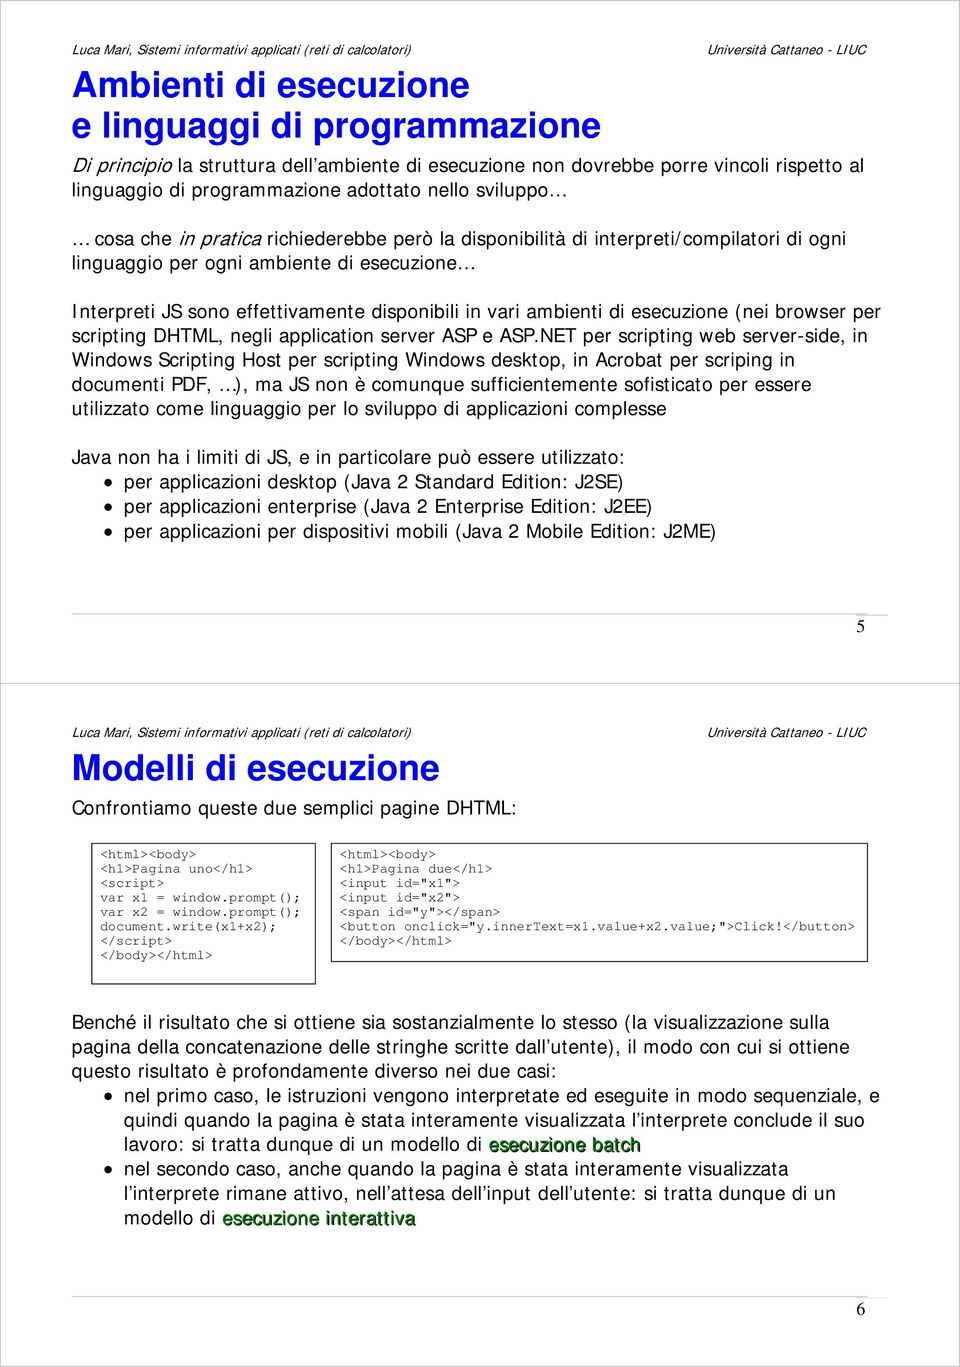 esecuzione (nei browser per scripting DHTML, negli application server ASP e ASP.